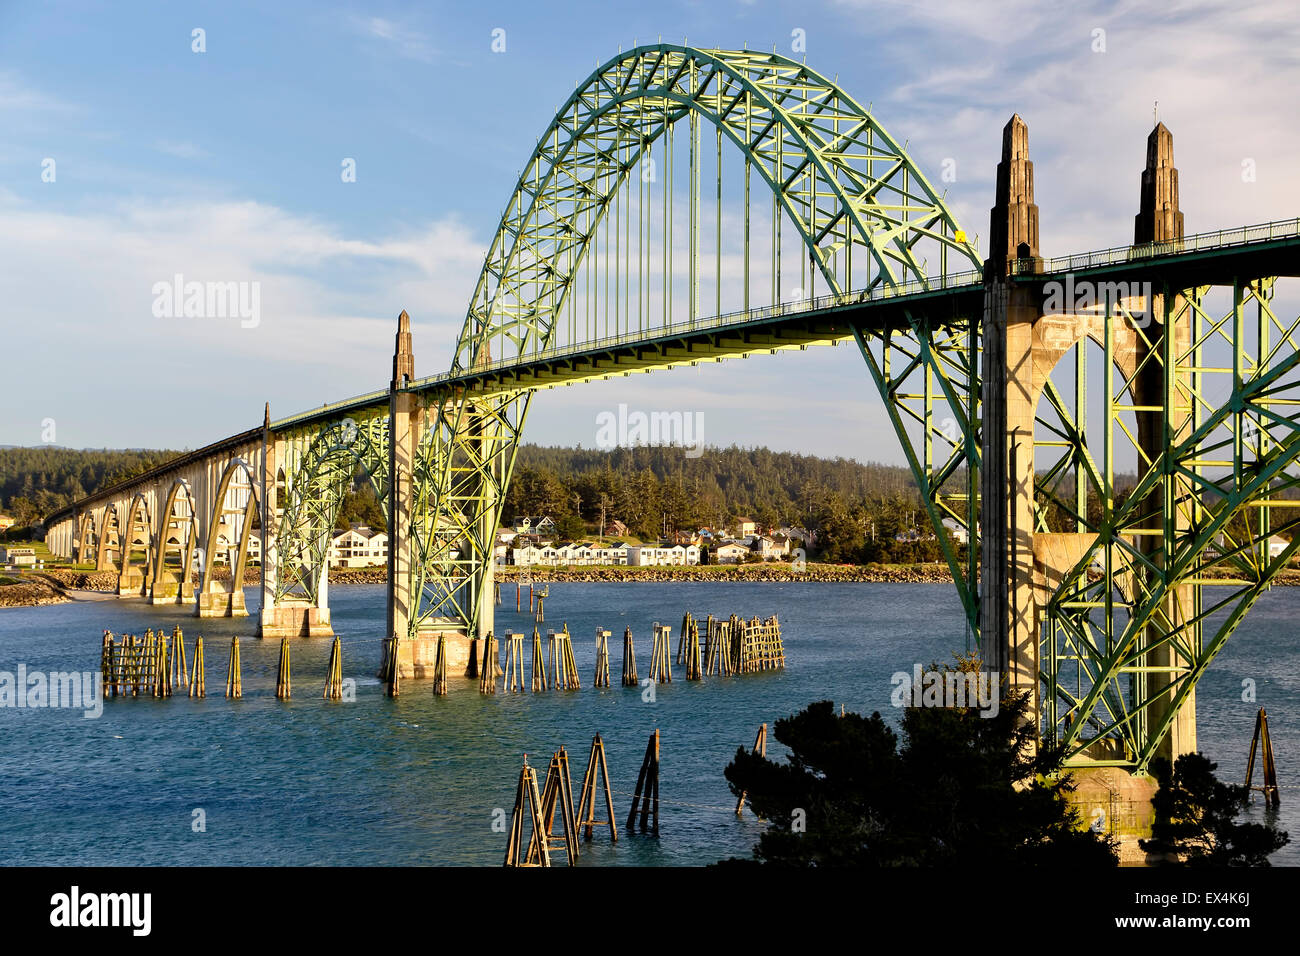 Yaquina Bay Bridge, Newport, Oregon USA - Stock Image